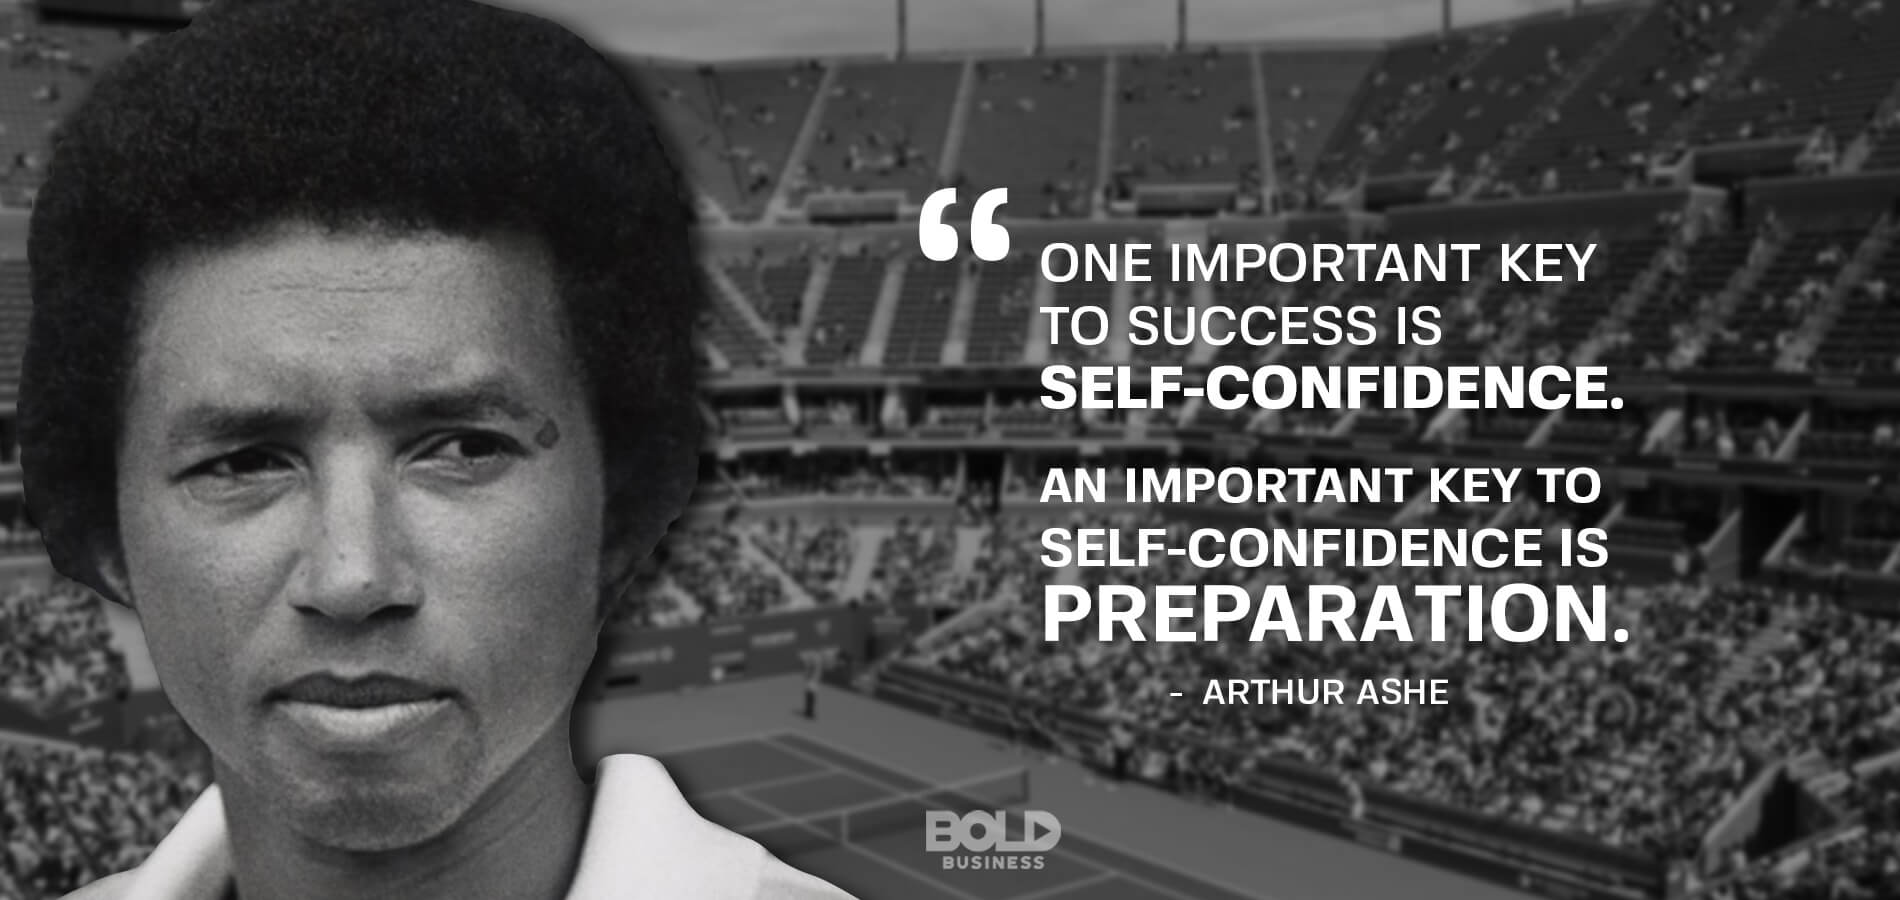 Arthur Ashe achievements were dependent on self-confidence